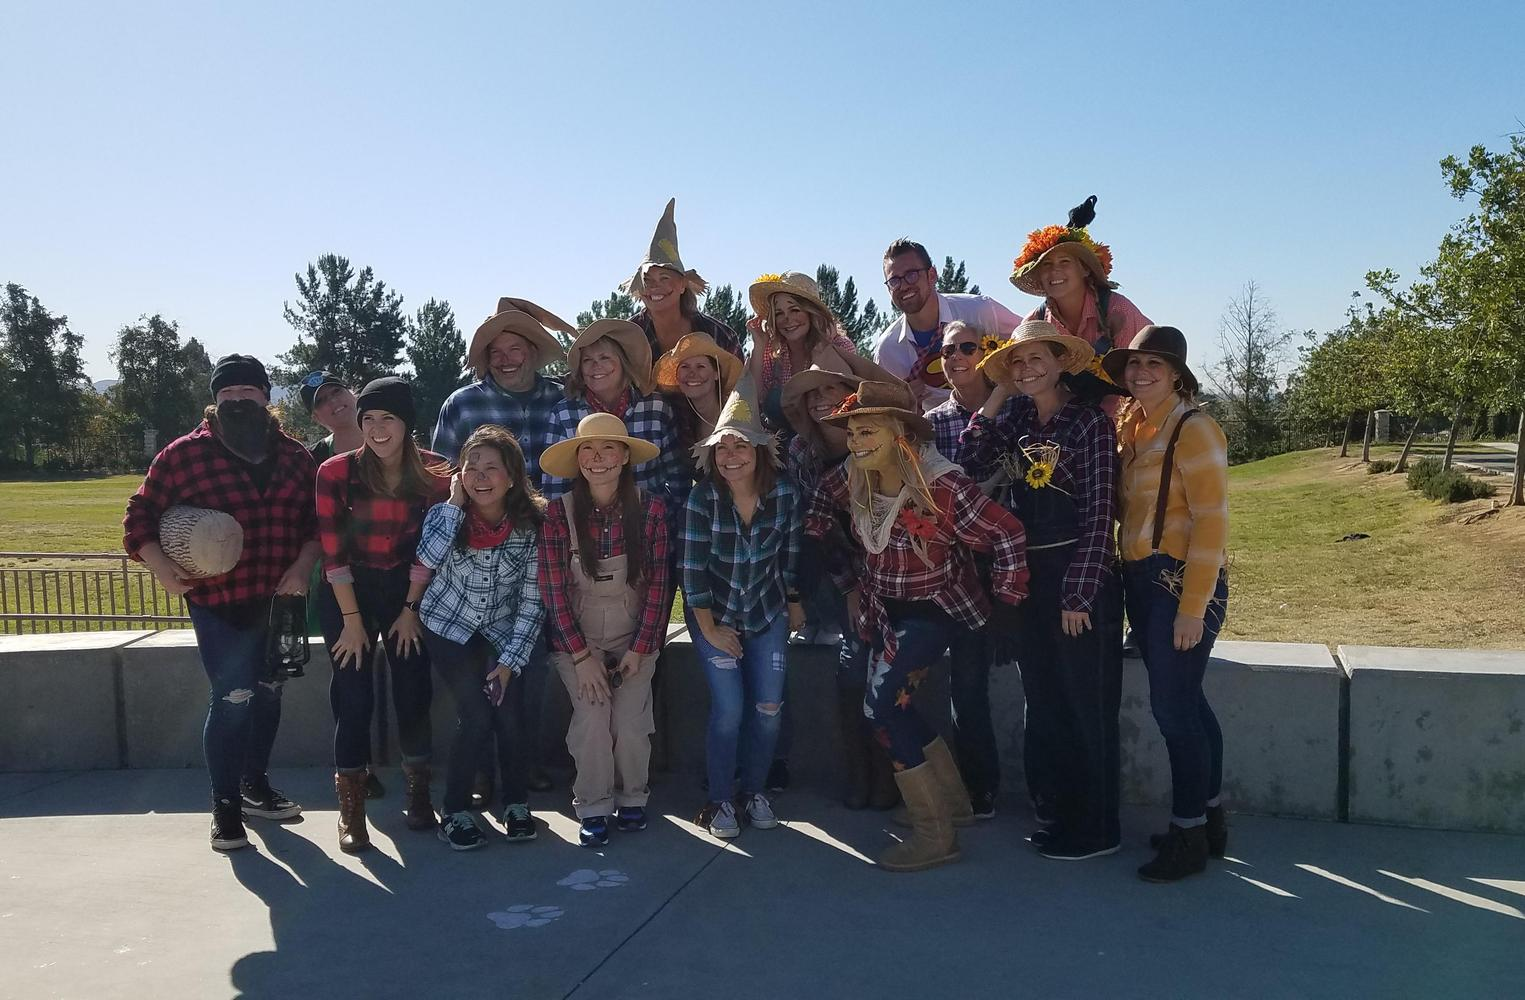 Staff scarecrows and lumber jacks dress up for Halloween